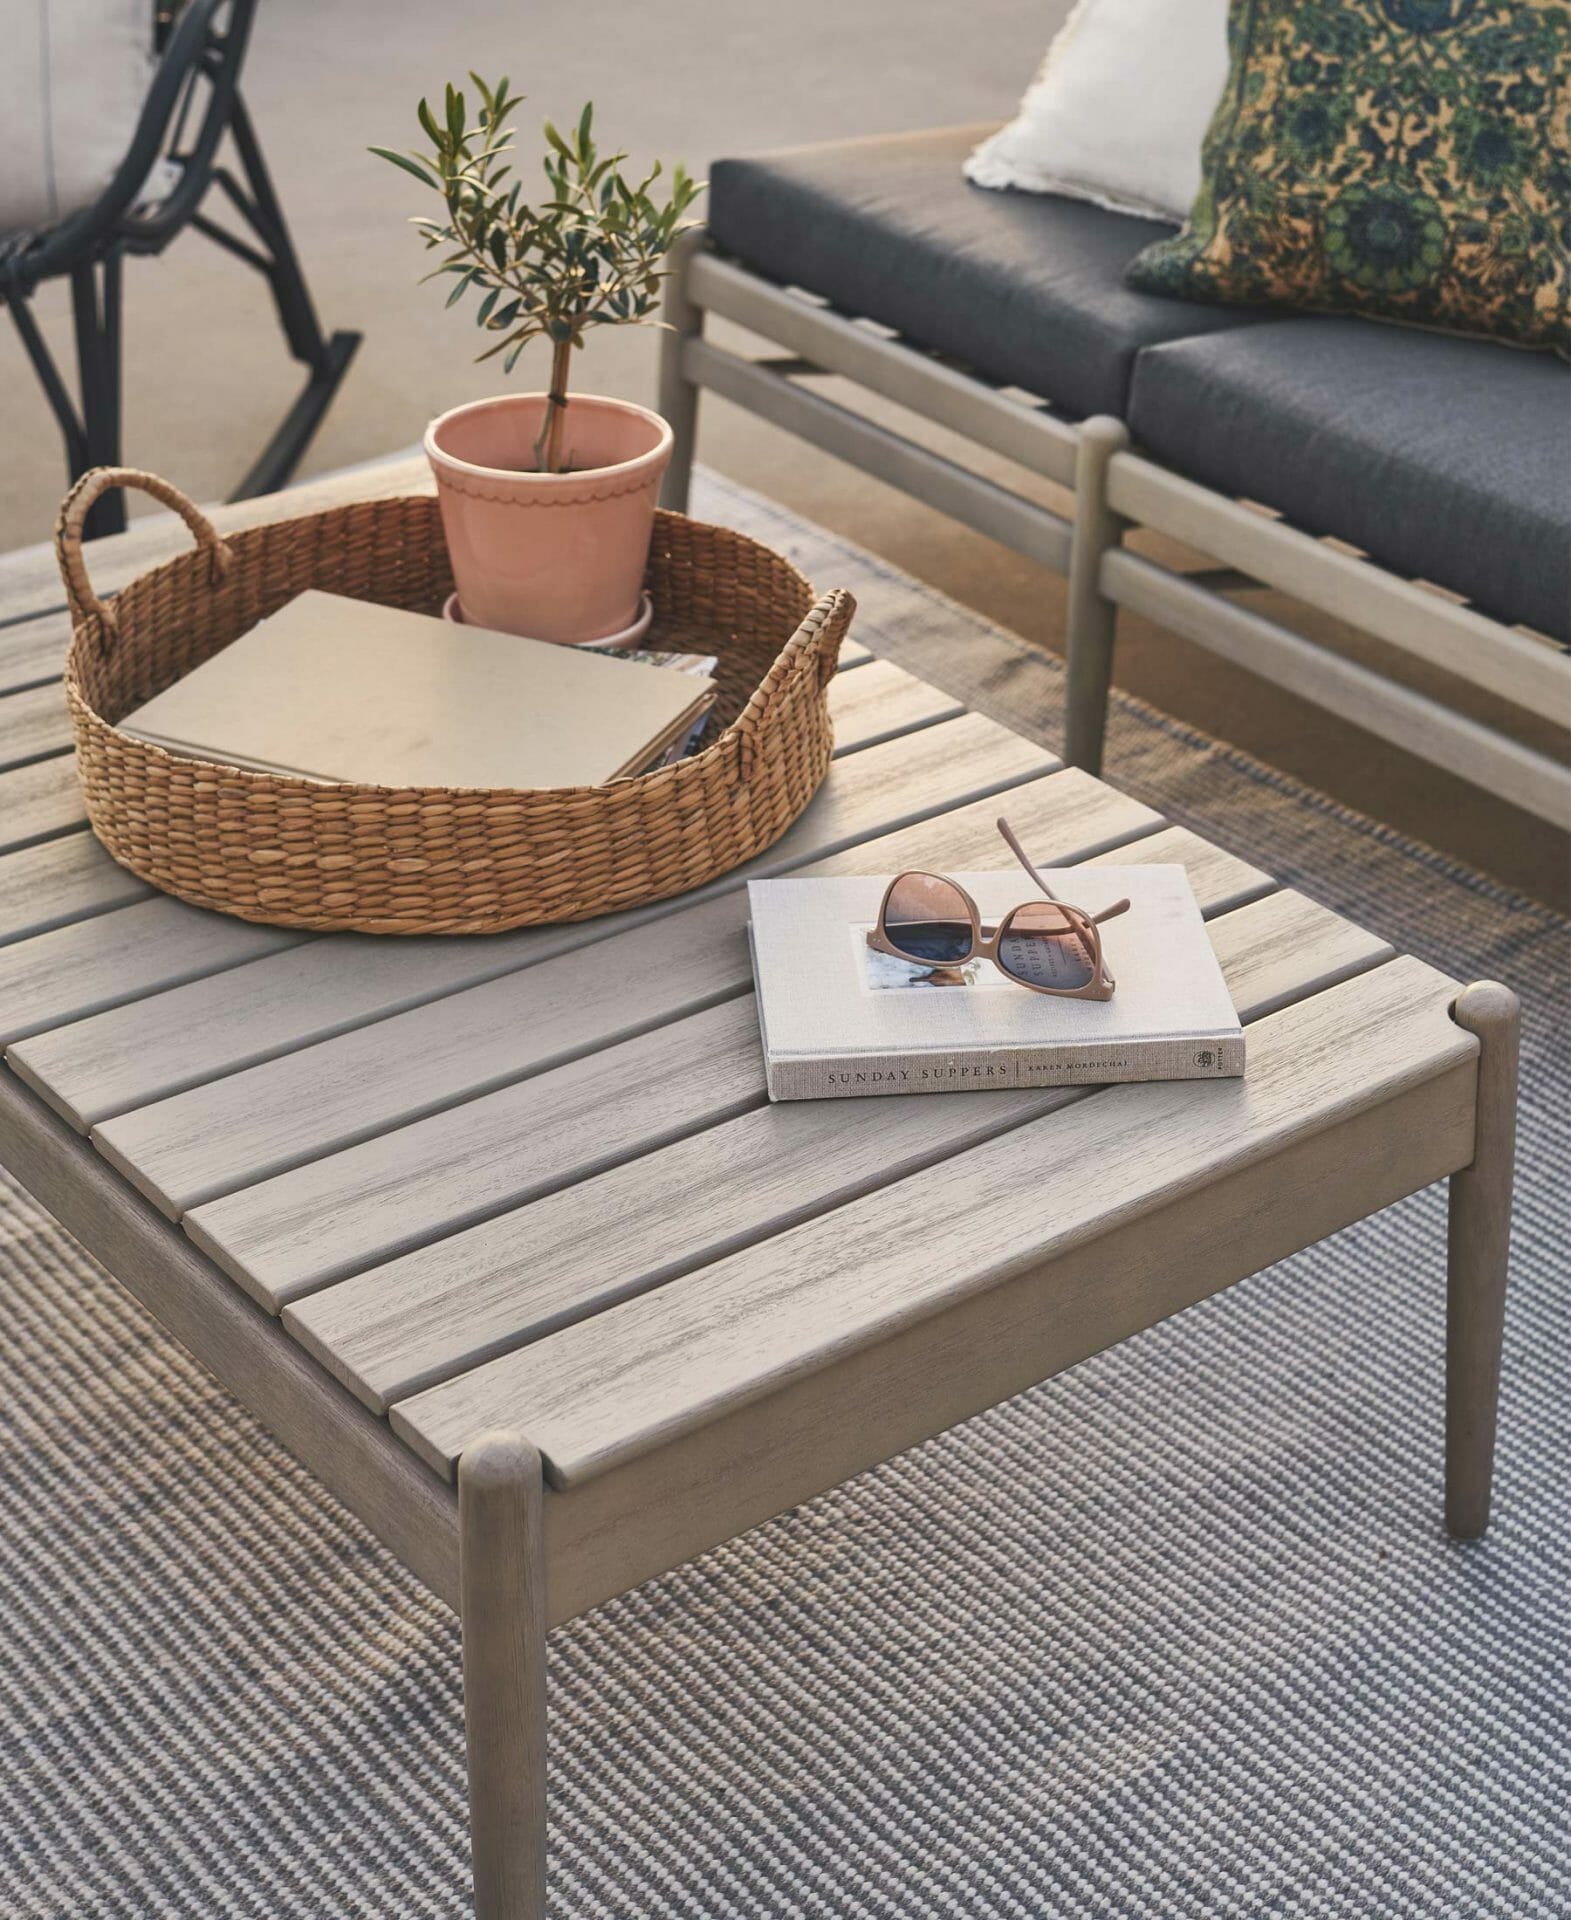 The eucalyptus Lagora Coffee Table is shown with a rattan tray with potted plant, and notebook with sunglasses.